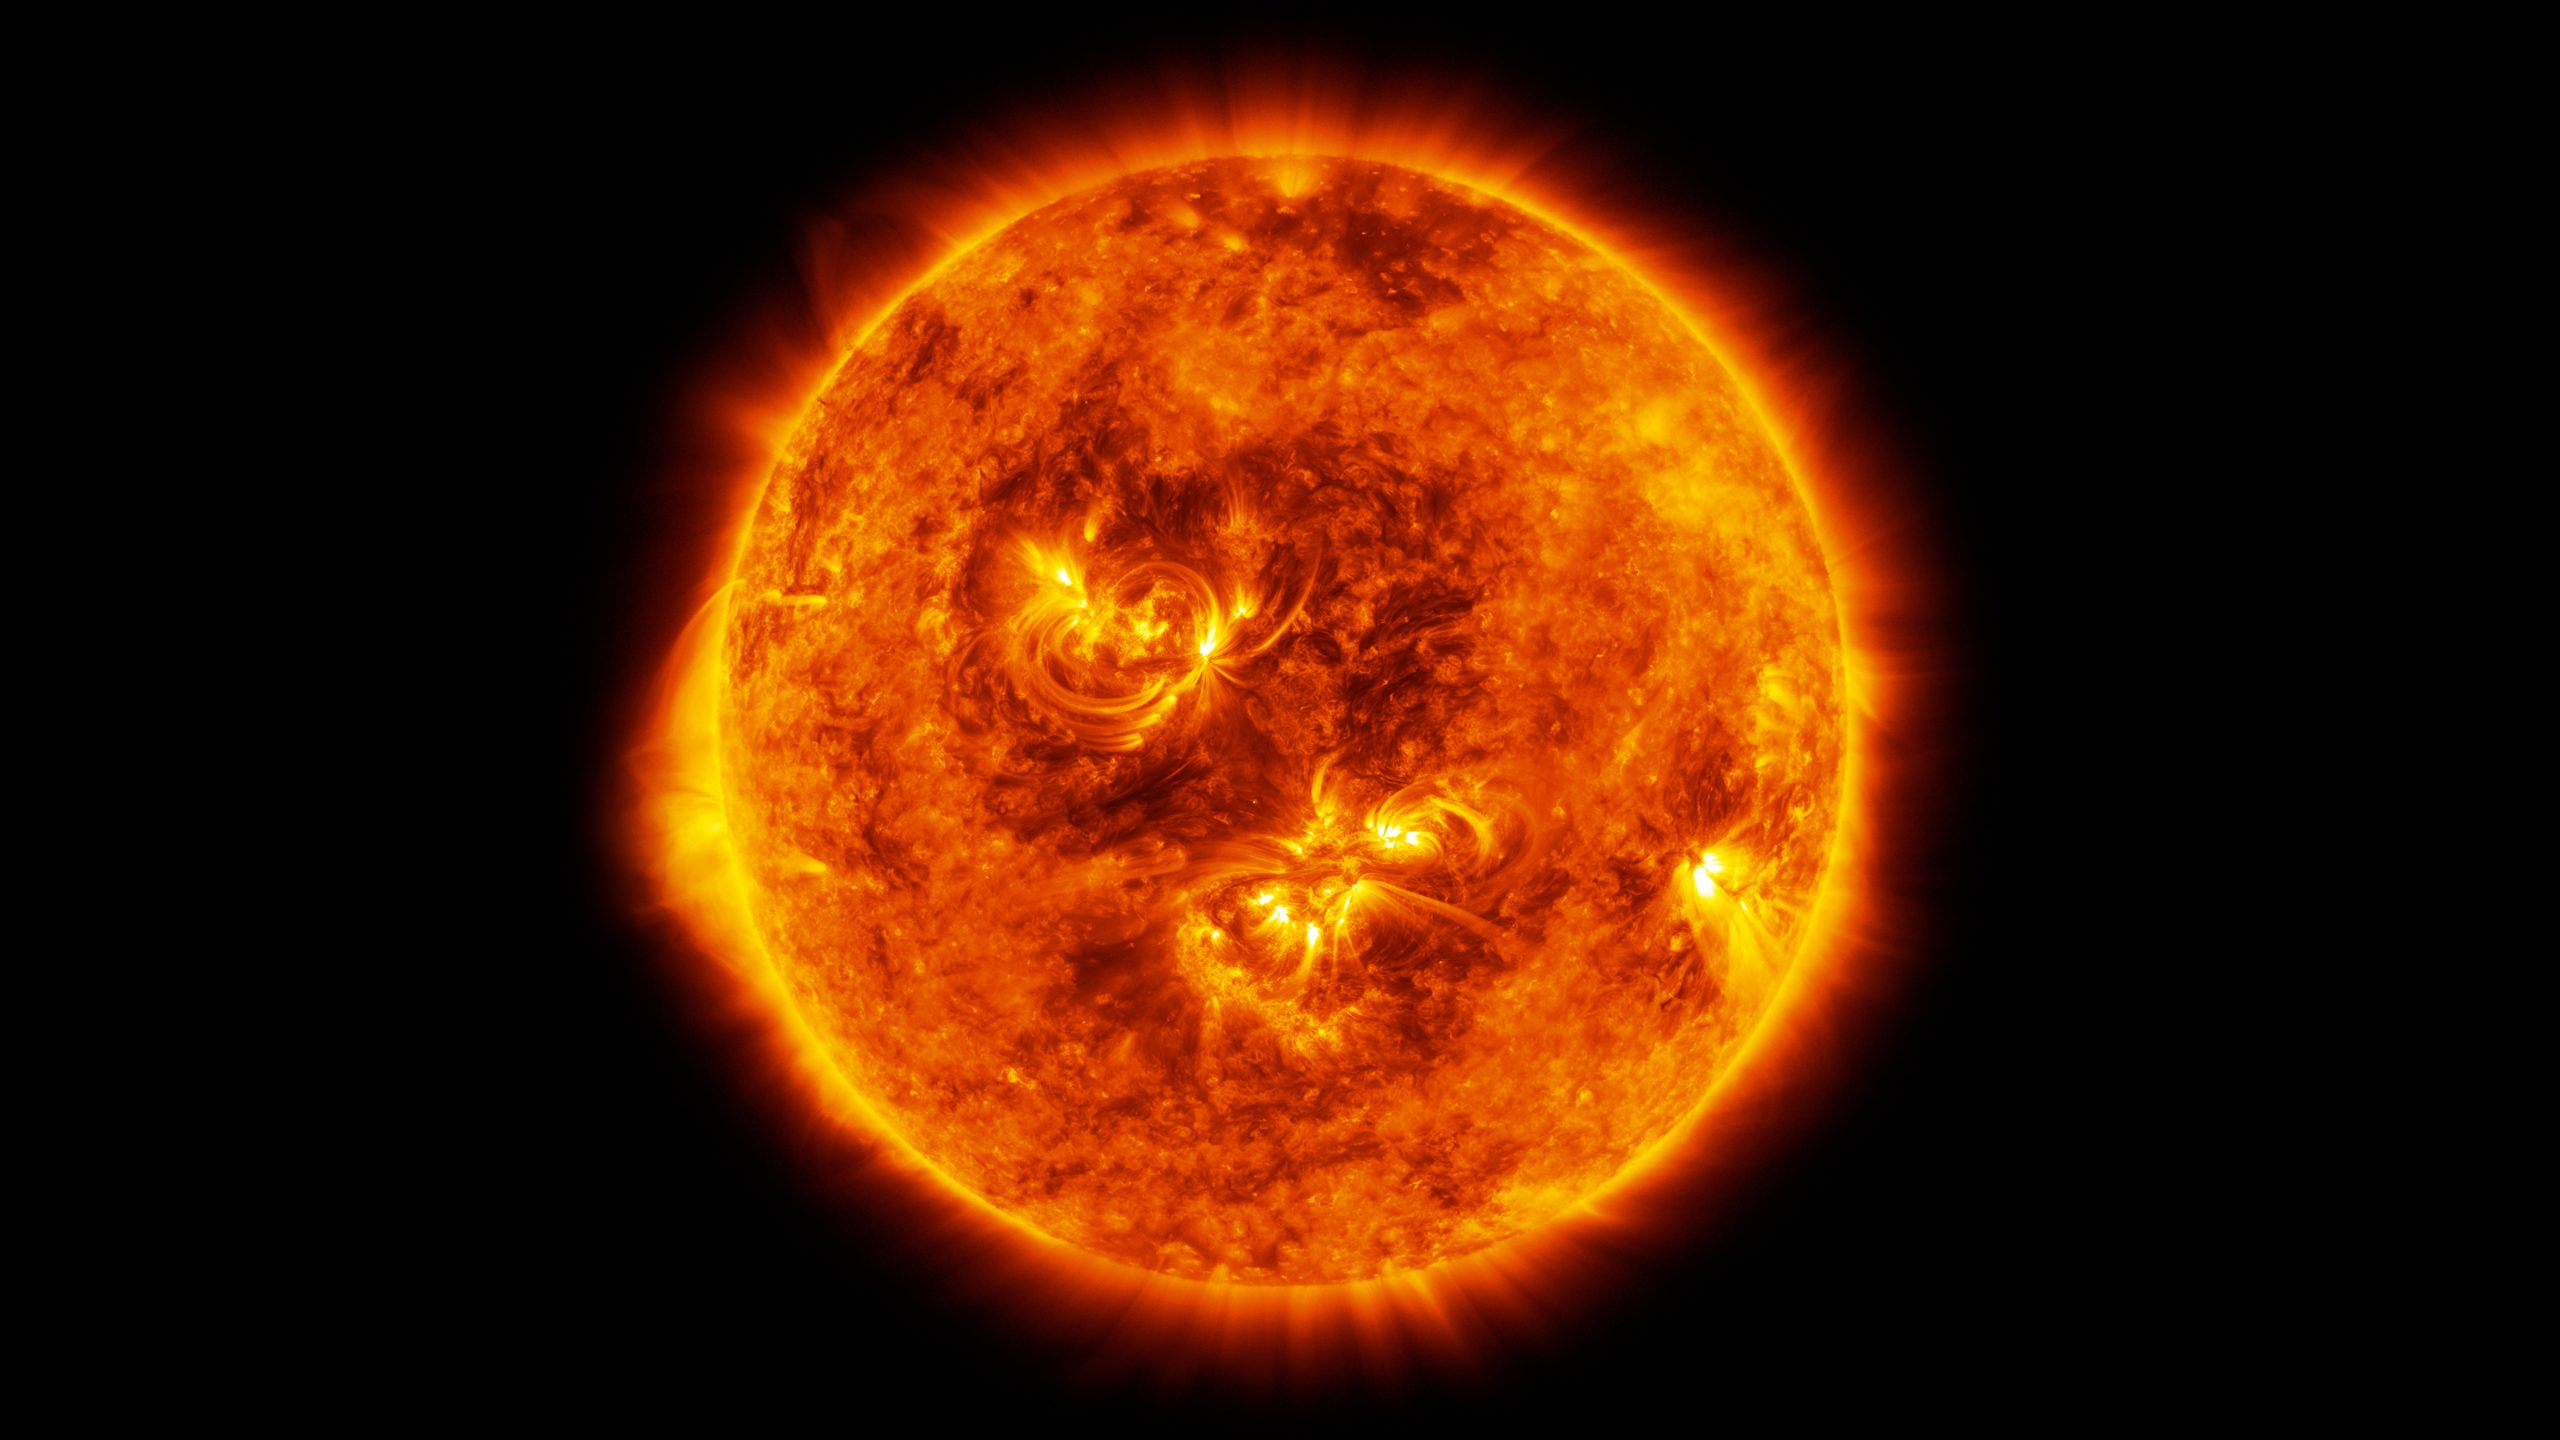 Sun (Yellow dwarf in our solar system)